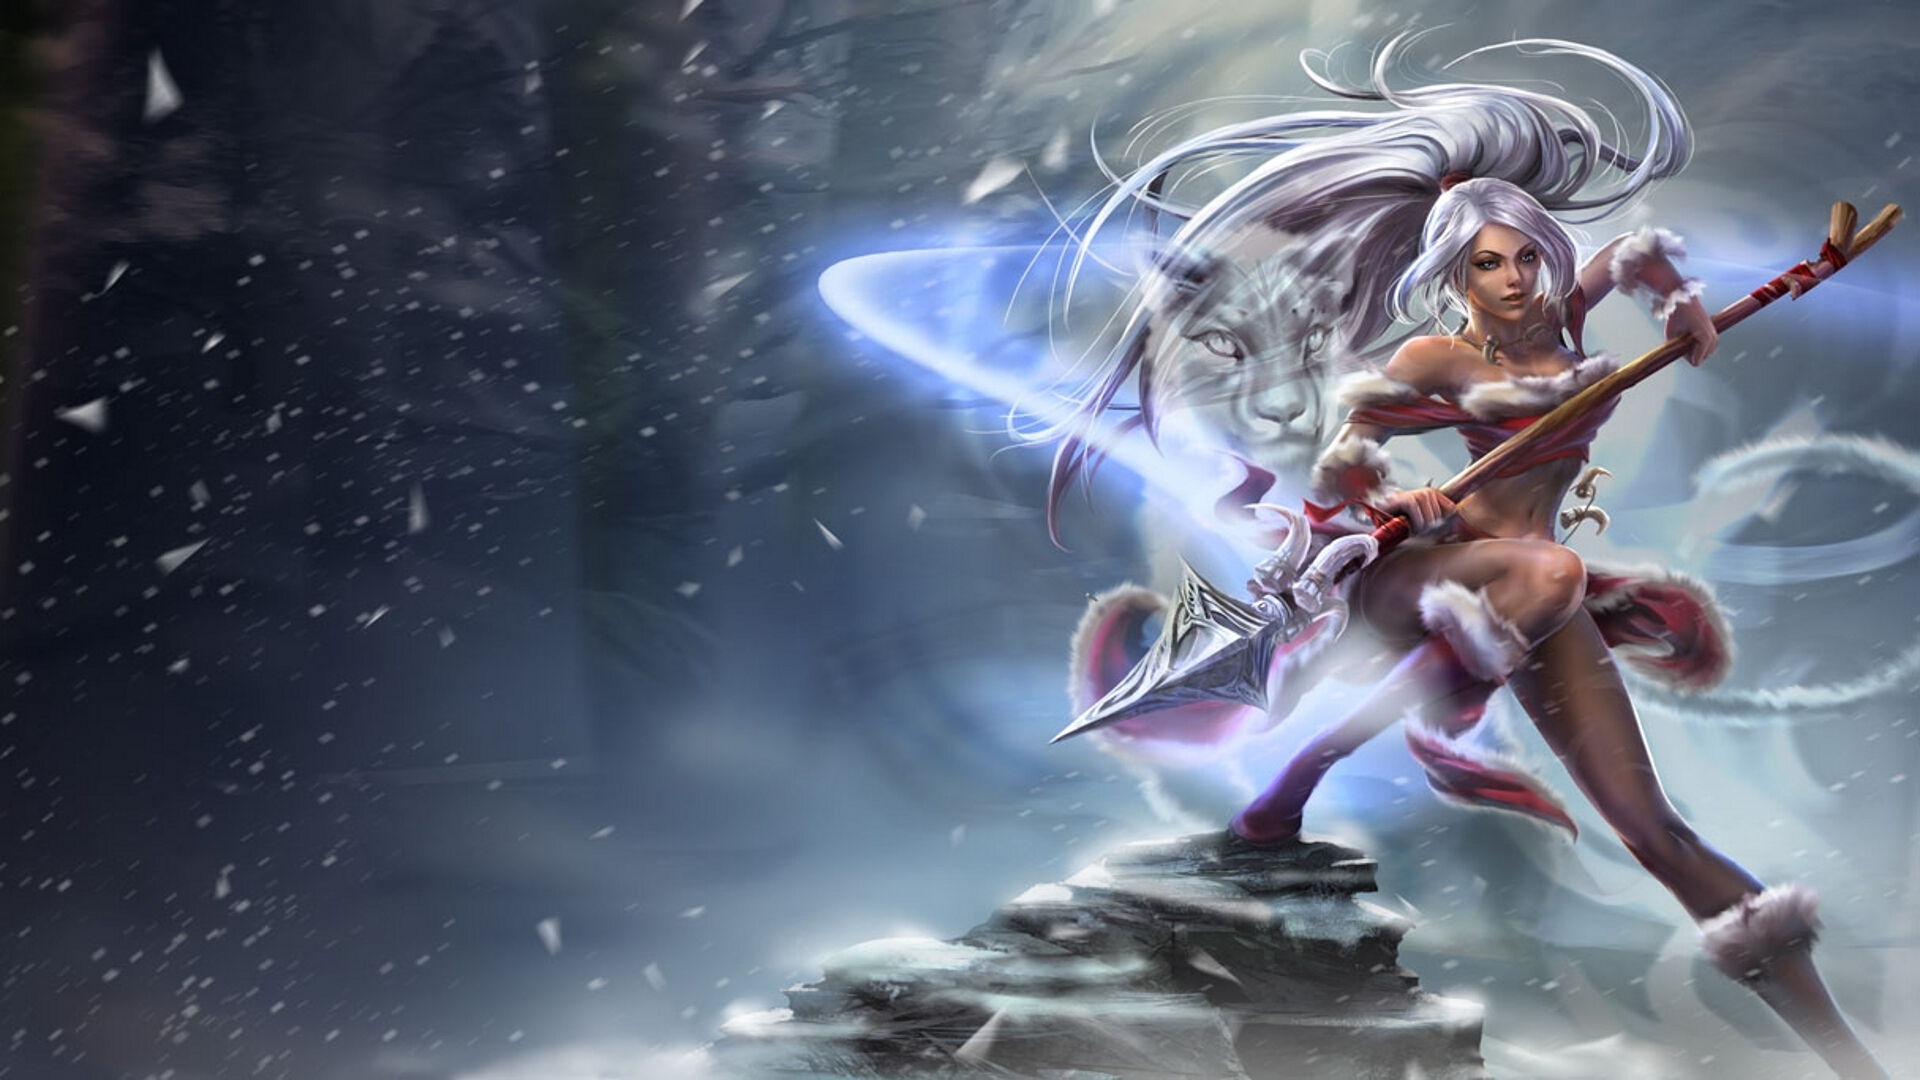 Legends Nidalee girl cat snow cold spear fantasy wallpaper background 1920x1080